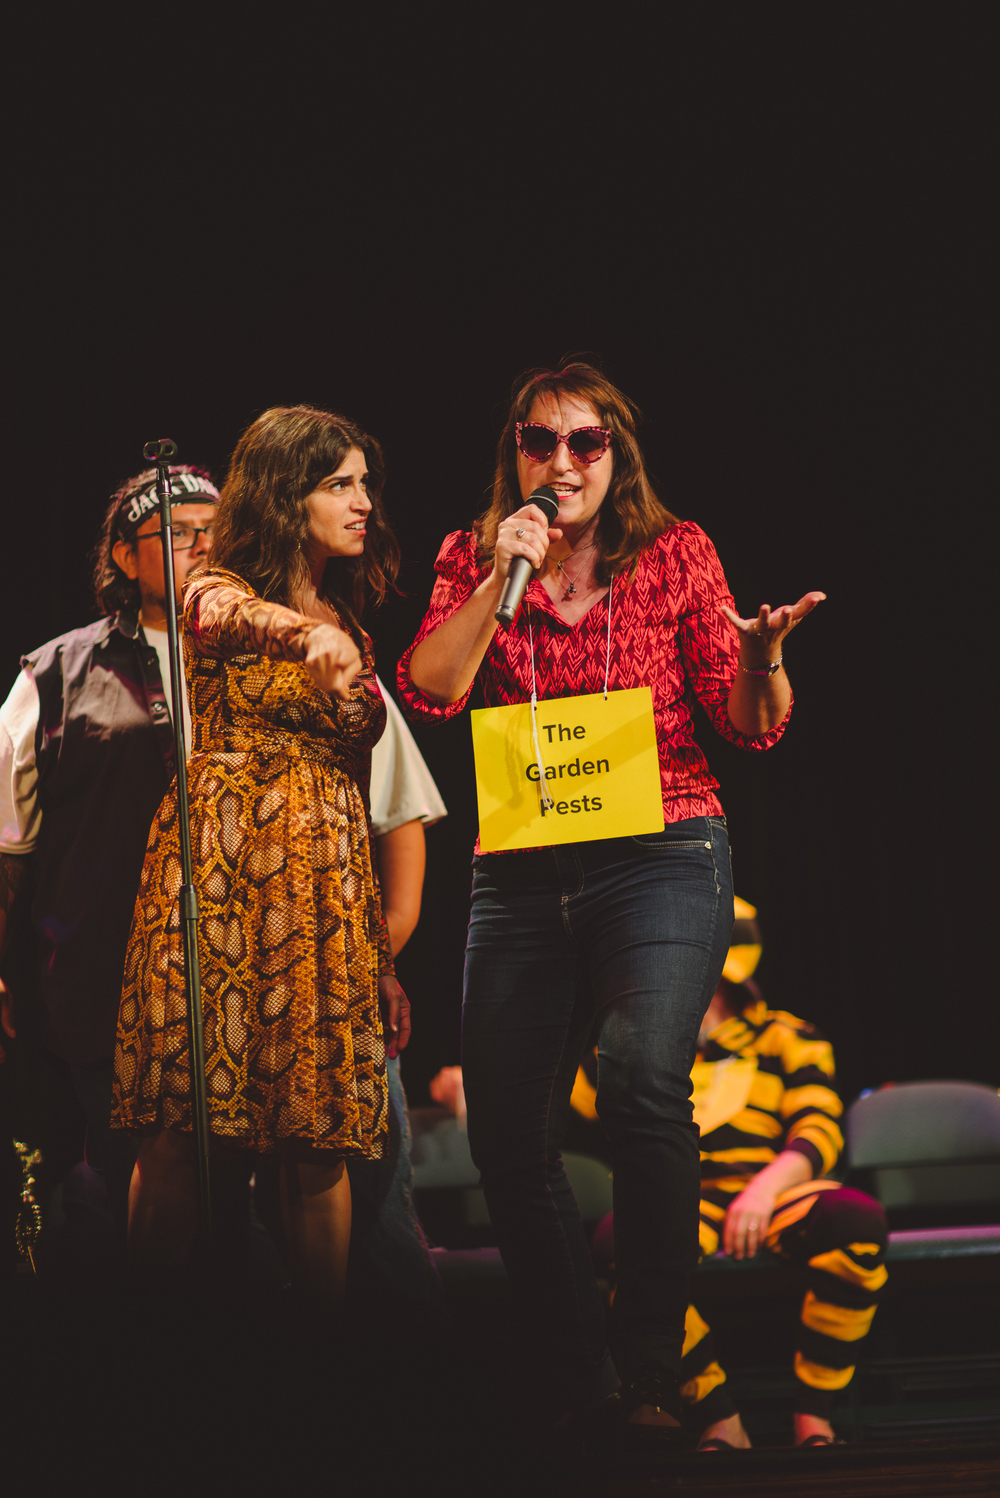 Rebecca Feldman and Speller at The Spelling Bee Company show